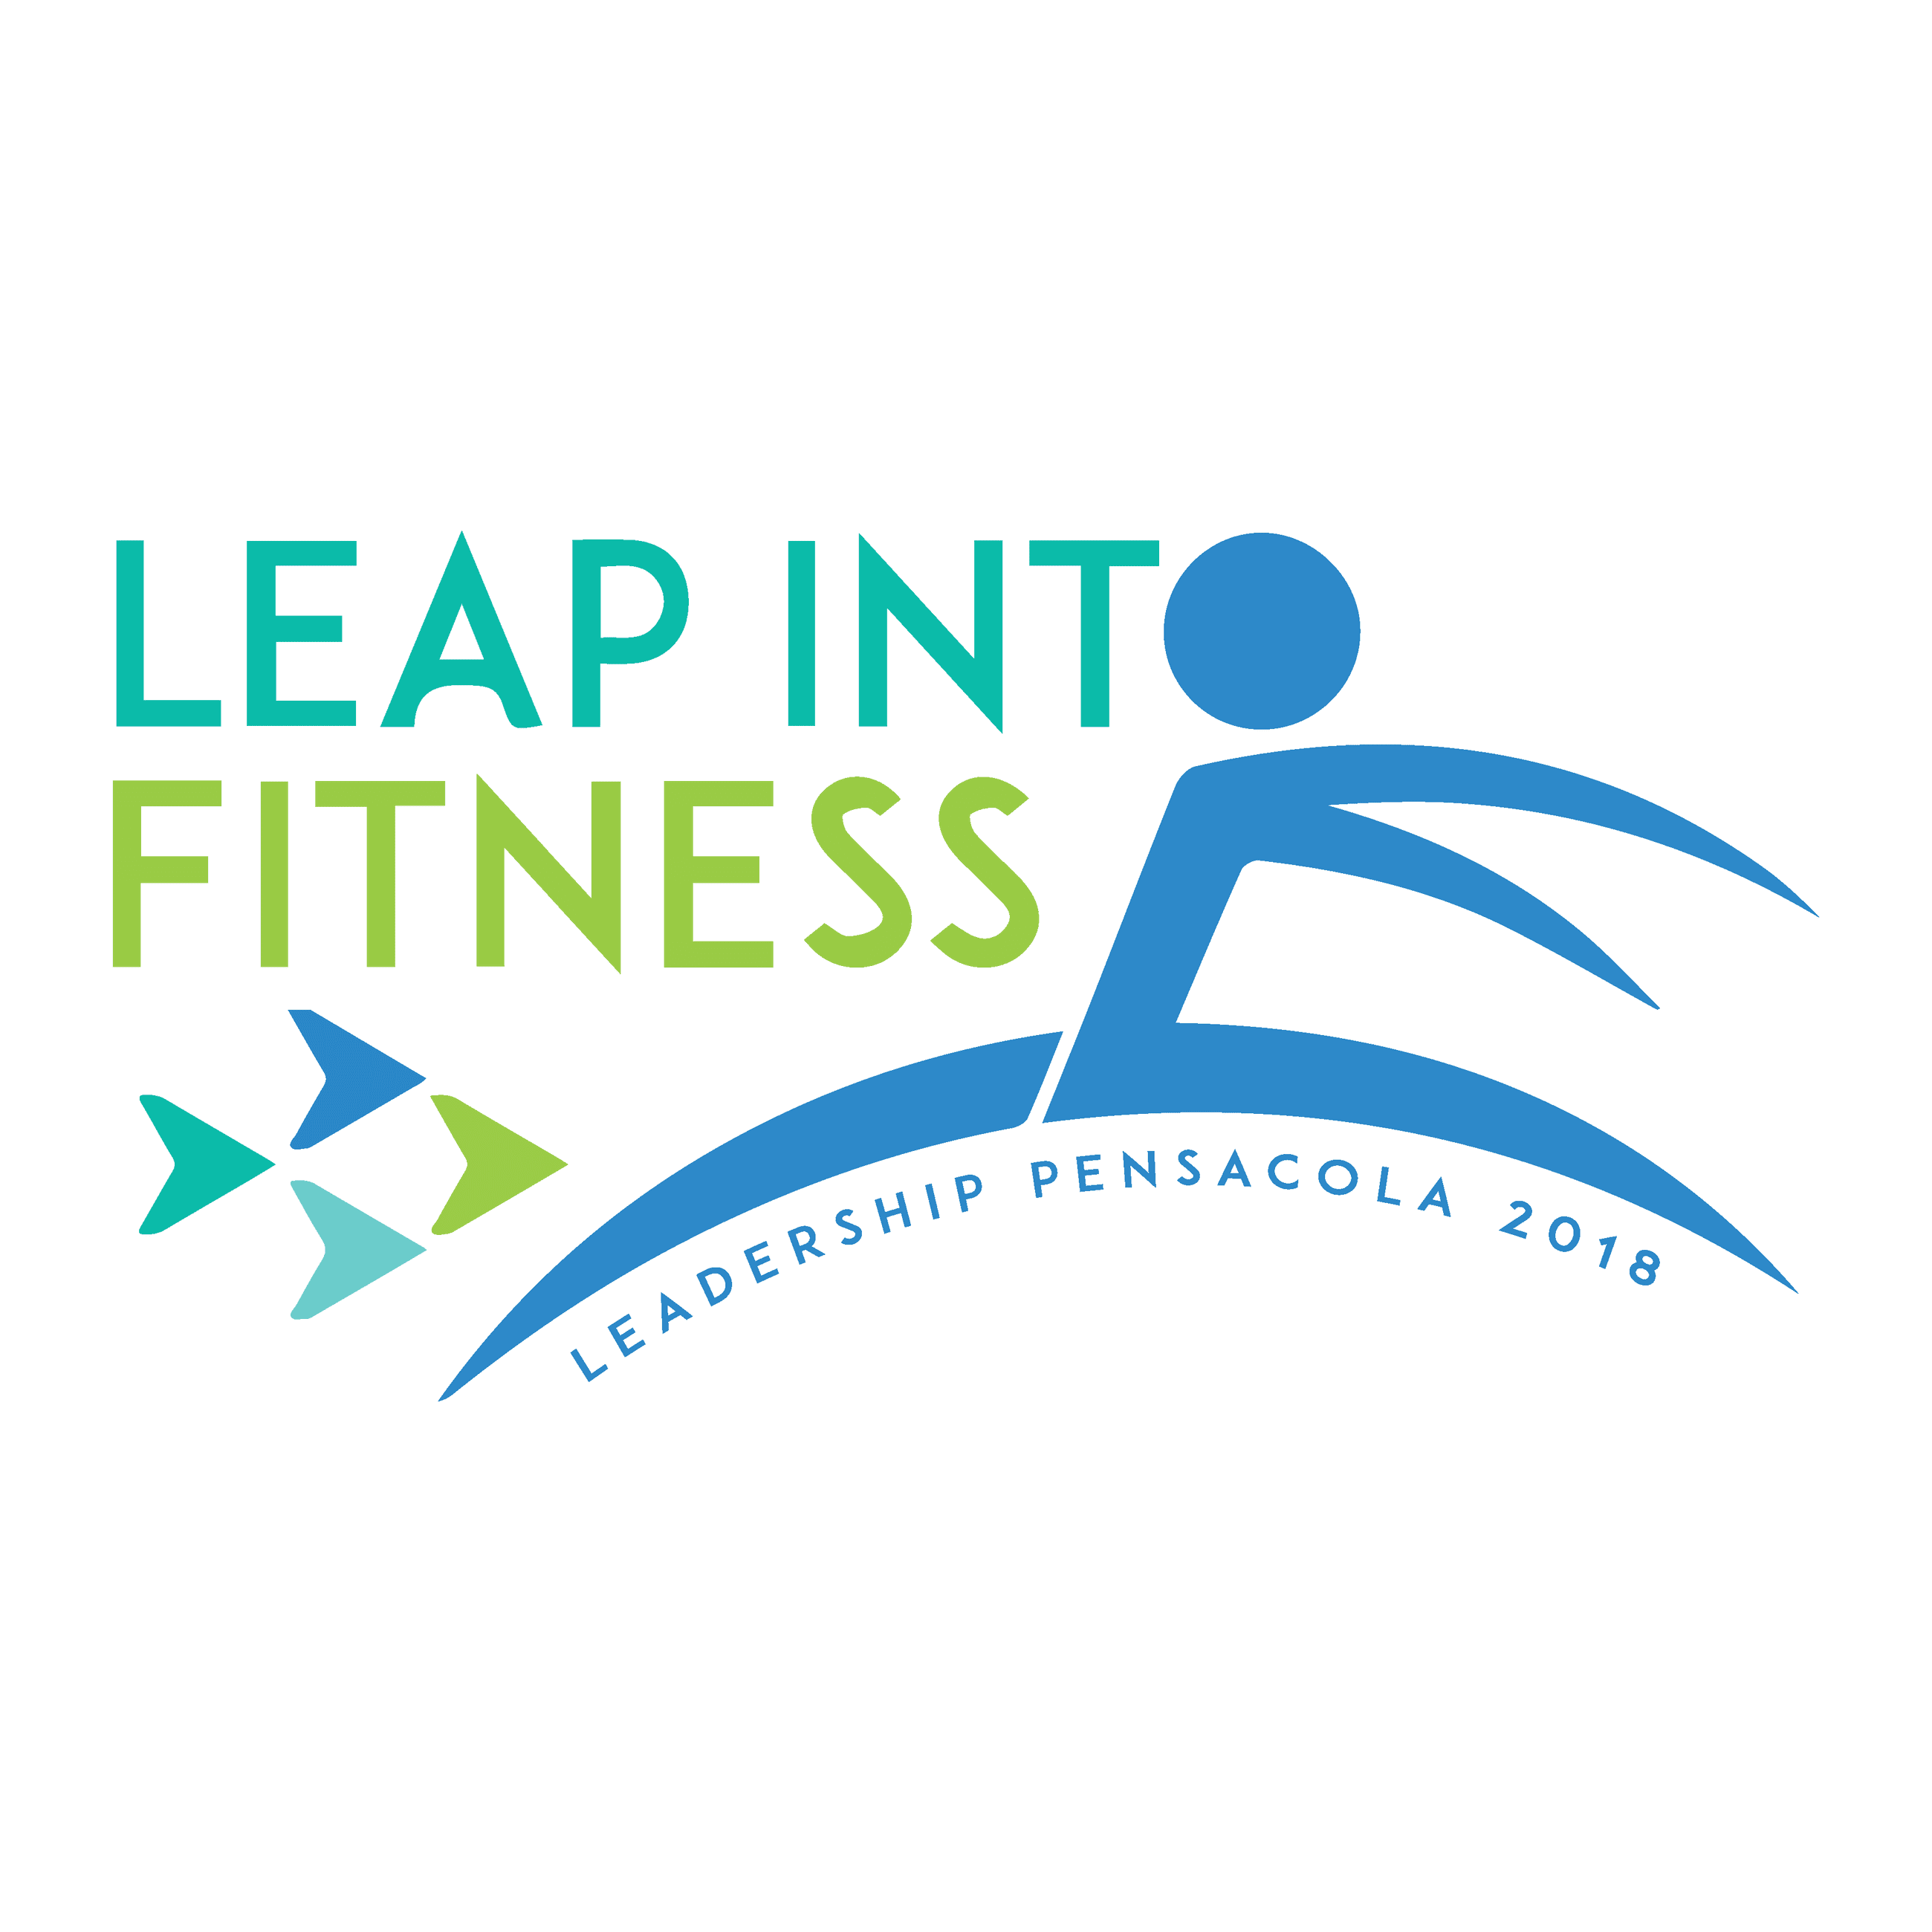 LEAP into fitness logo